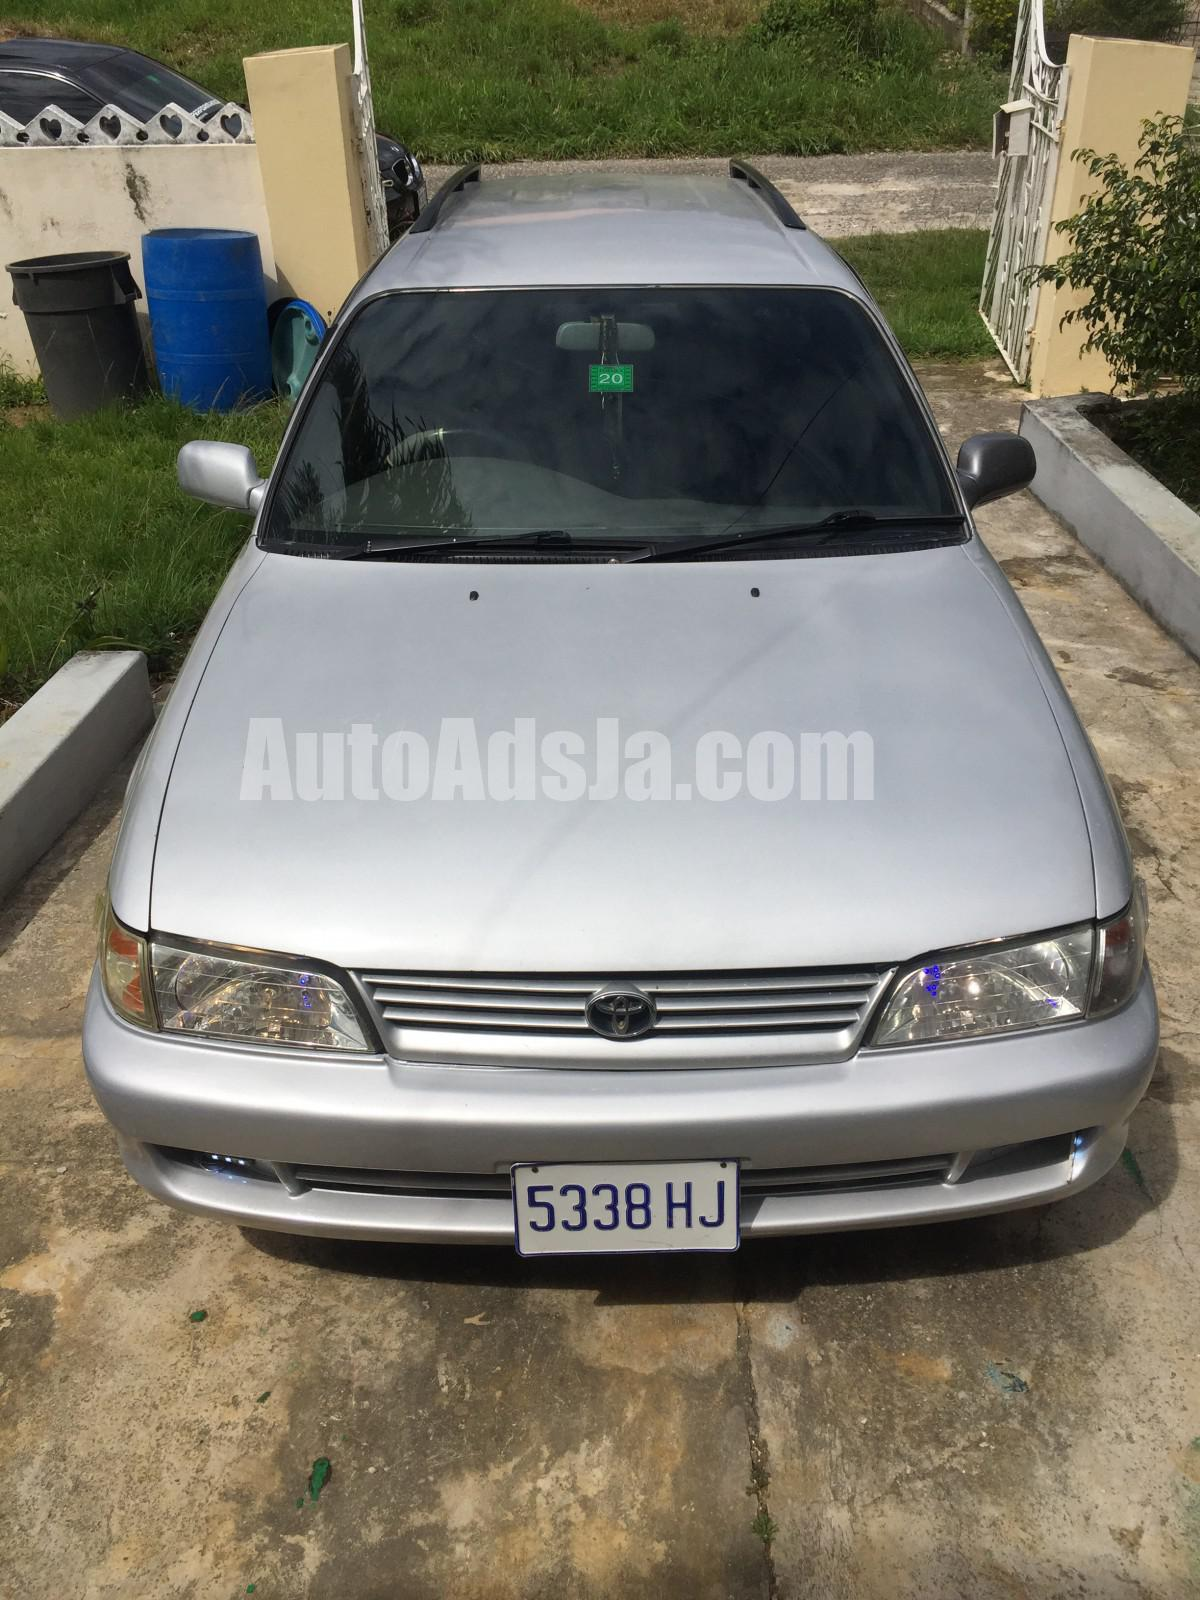 2000 Toyota Corolla G Touring For Sale In St Elizabeth Jamaica Autoadsja Com